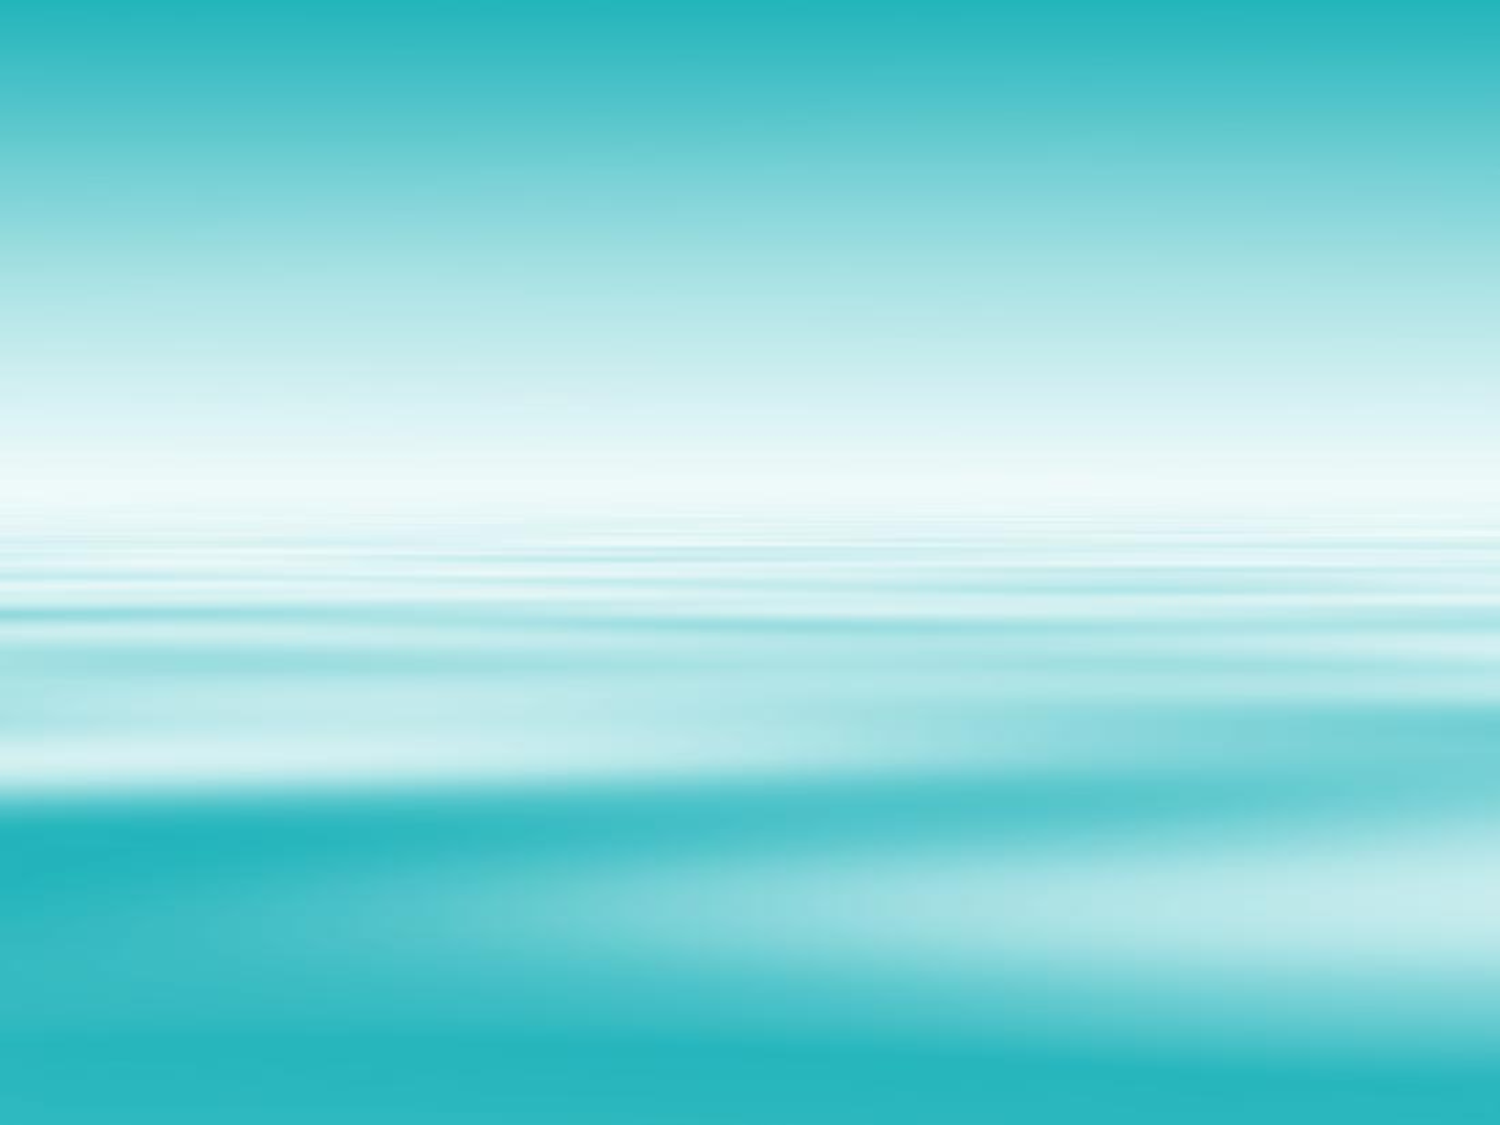 powerpoint background free